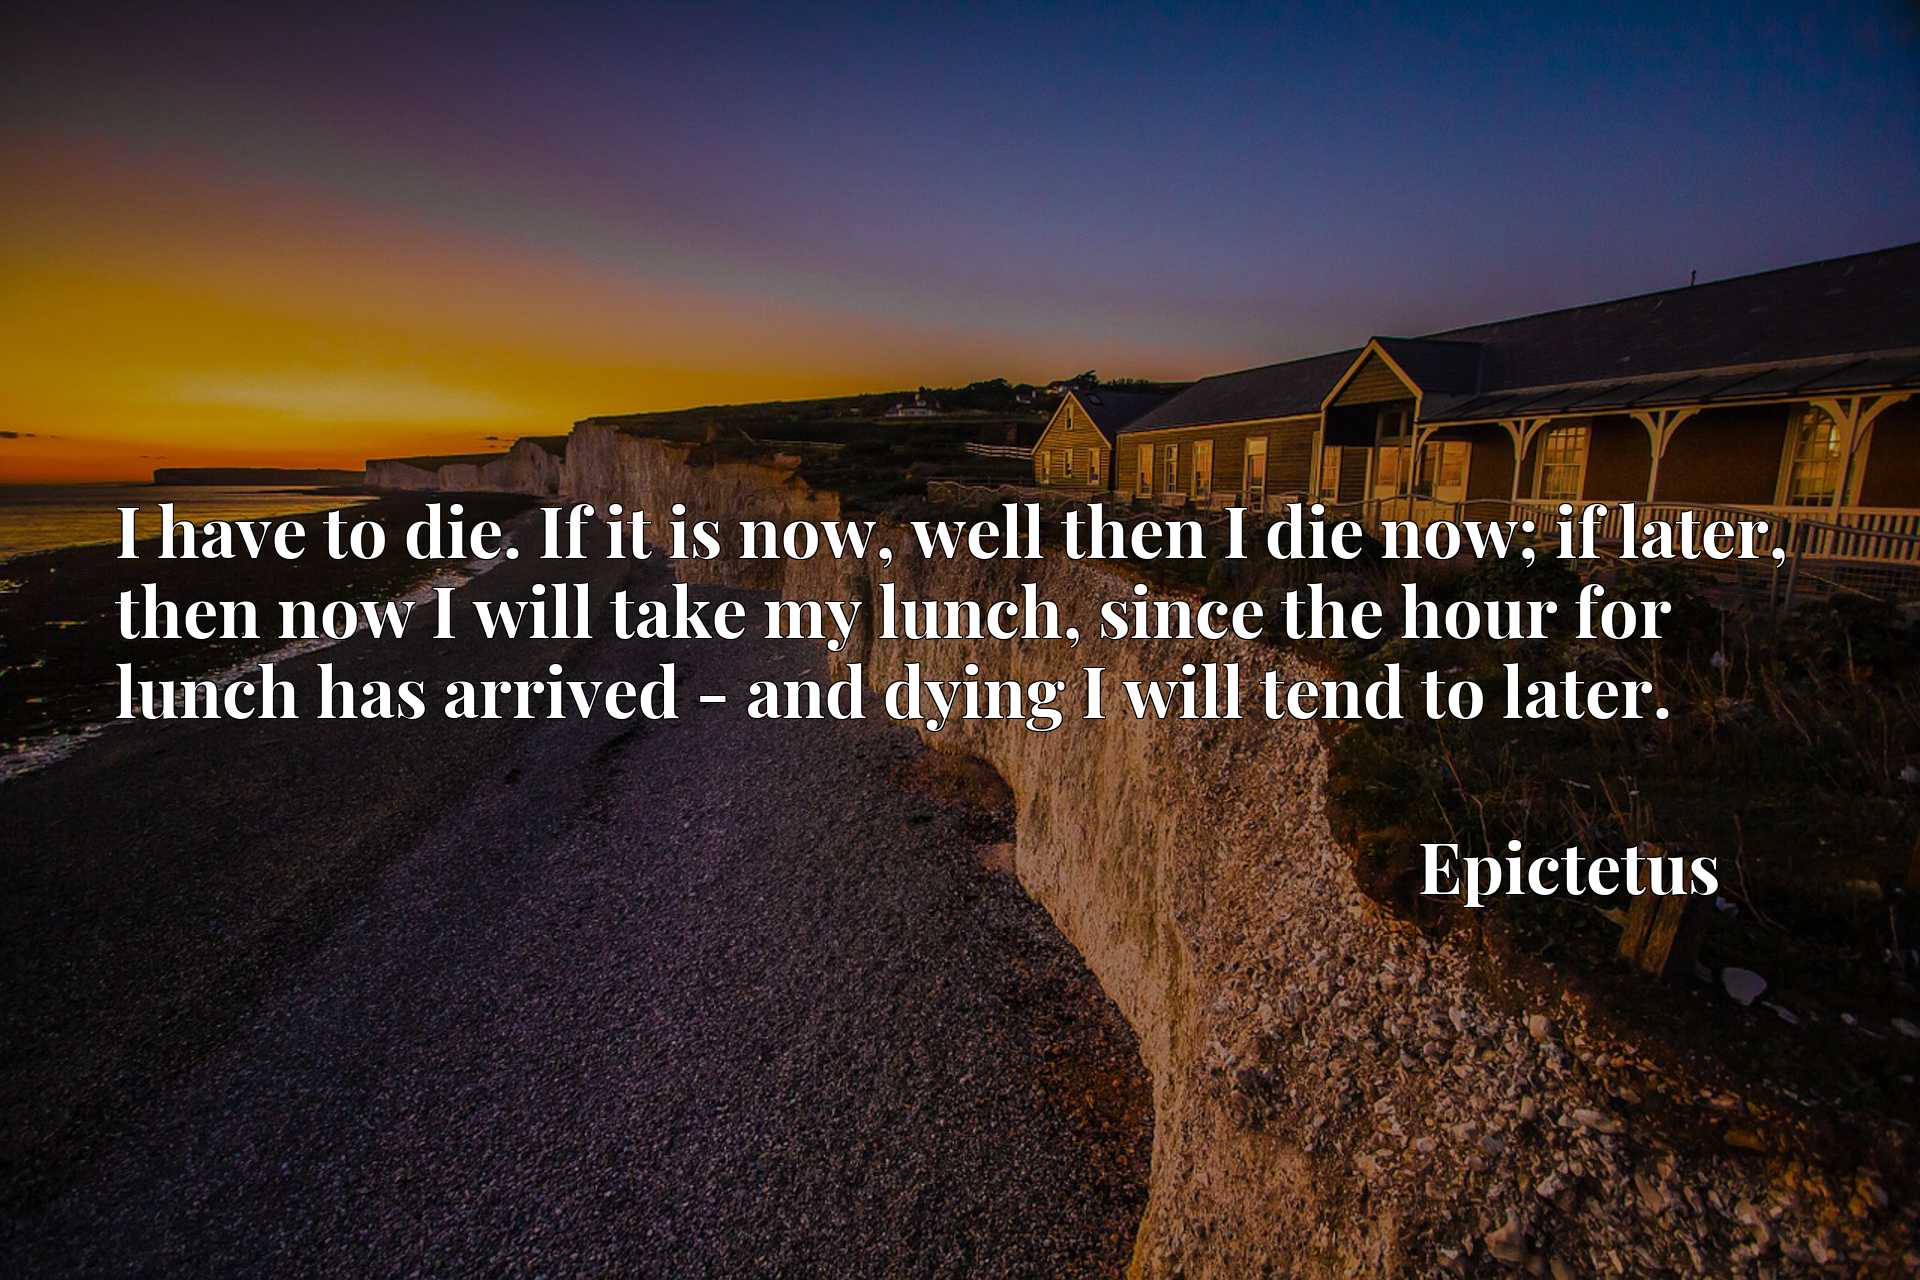 I have to die. If it is now, well then I die now; if later, then now I will take my lunch, since the hour for lunch has arrived - and dying I will tend to later.